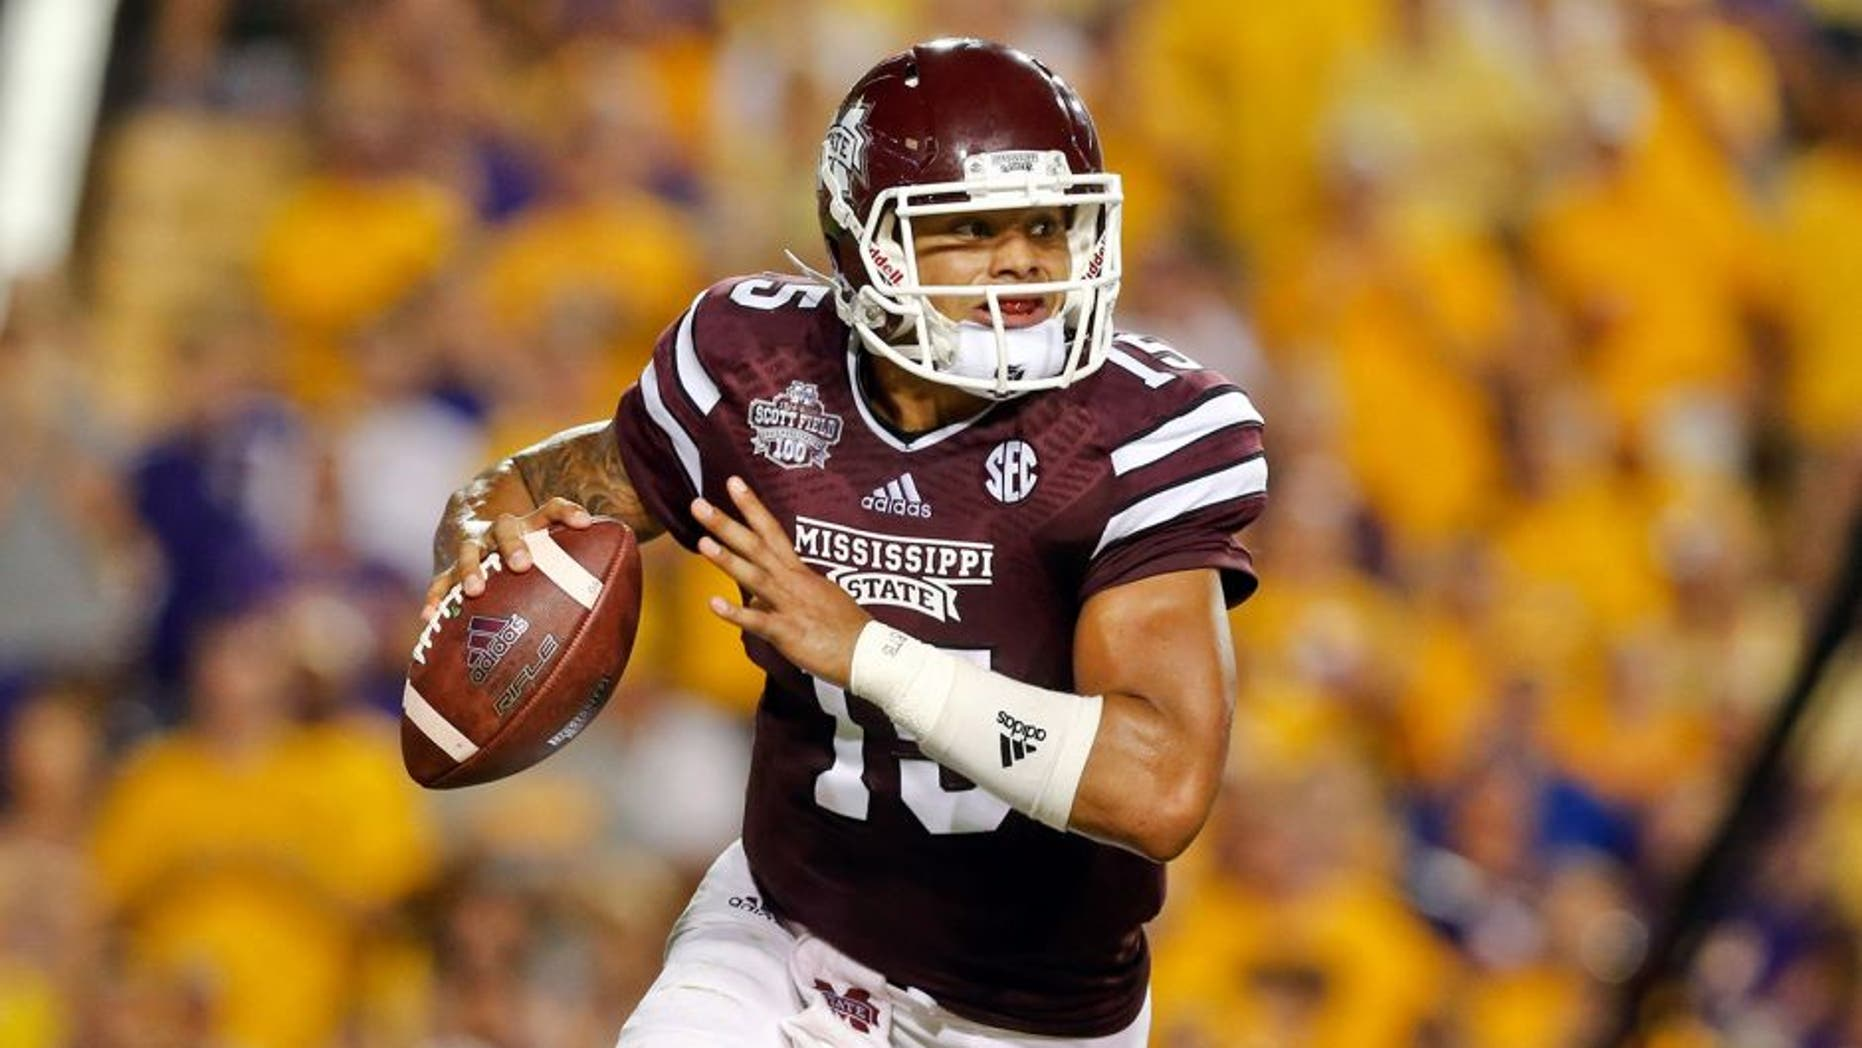 Sep 20, 2014; Baton Rouge, LA, USA; Mississippi State Bulldogs quarterback Dak Prescott (15) looks to pass against the LSU Tigers during the third quarter of a game at Tiger Stadium. Mandatory Credit: Derick E. Hingle-USA TODAY Sports